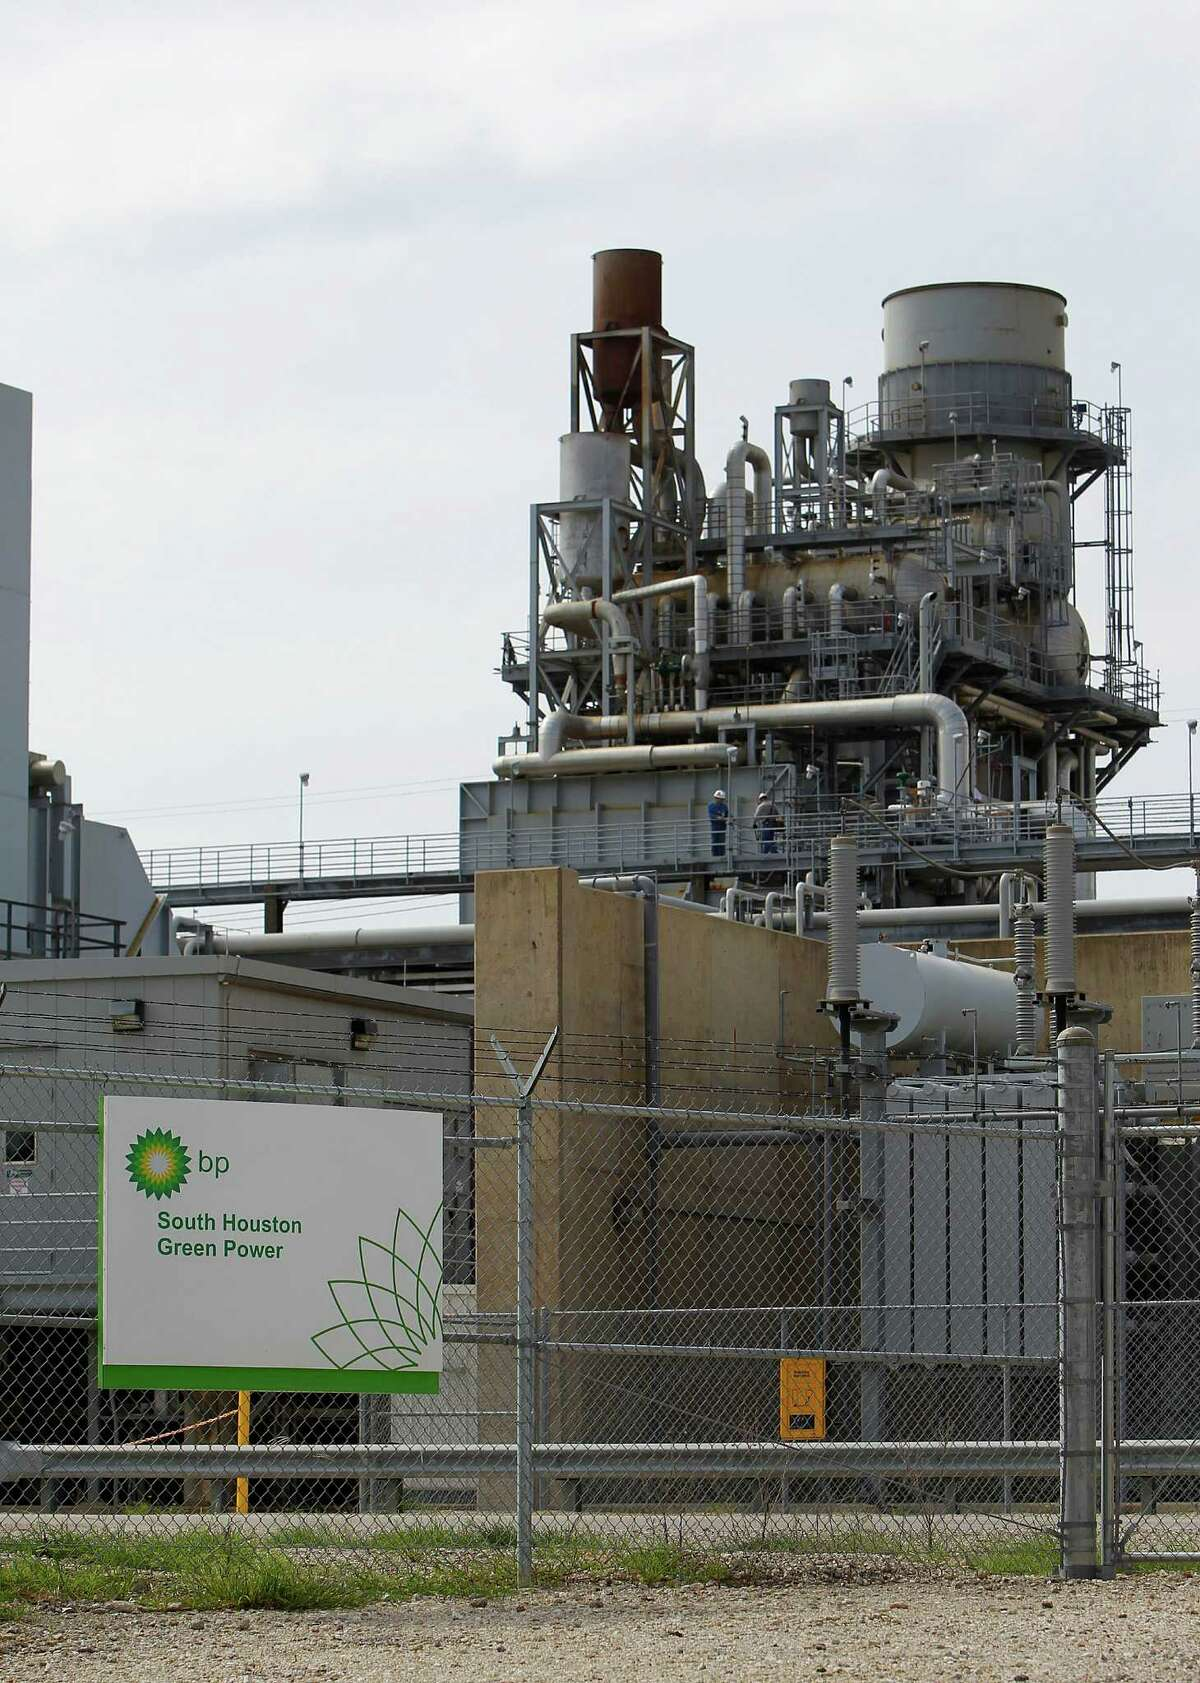 An analyst estimates that BP's Texas City refinery could be worth $2 billion. BP has said it plans to sell the refinery, which can process many types of crude oil, by year-end.